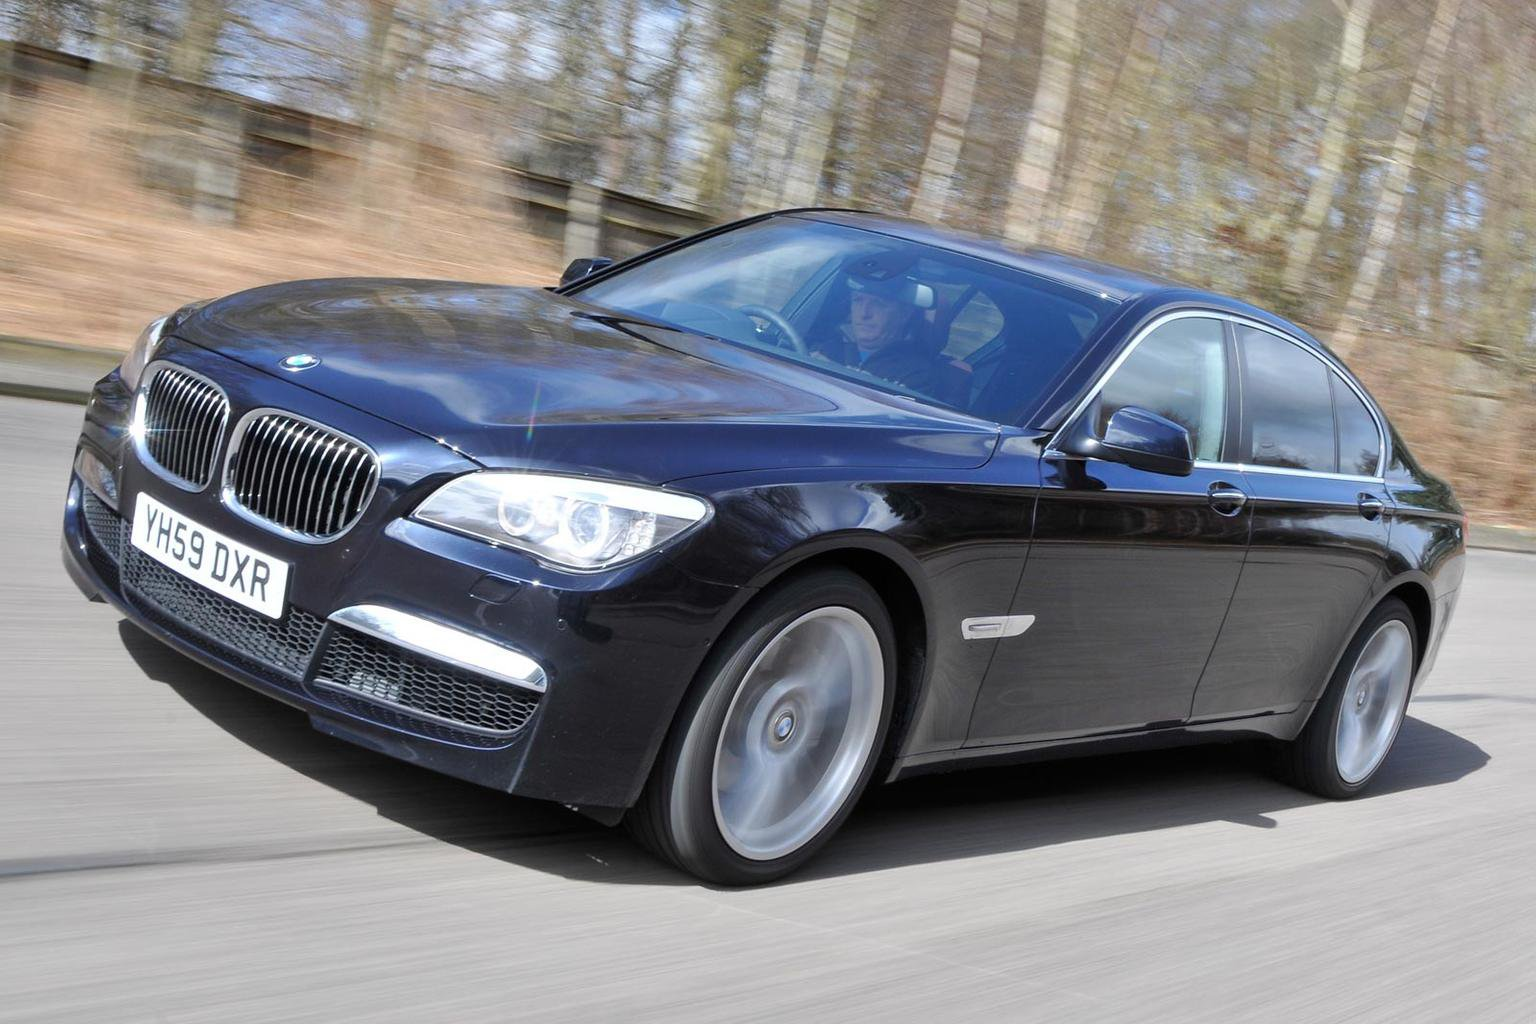 Deal of the day: BMW 730d